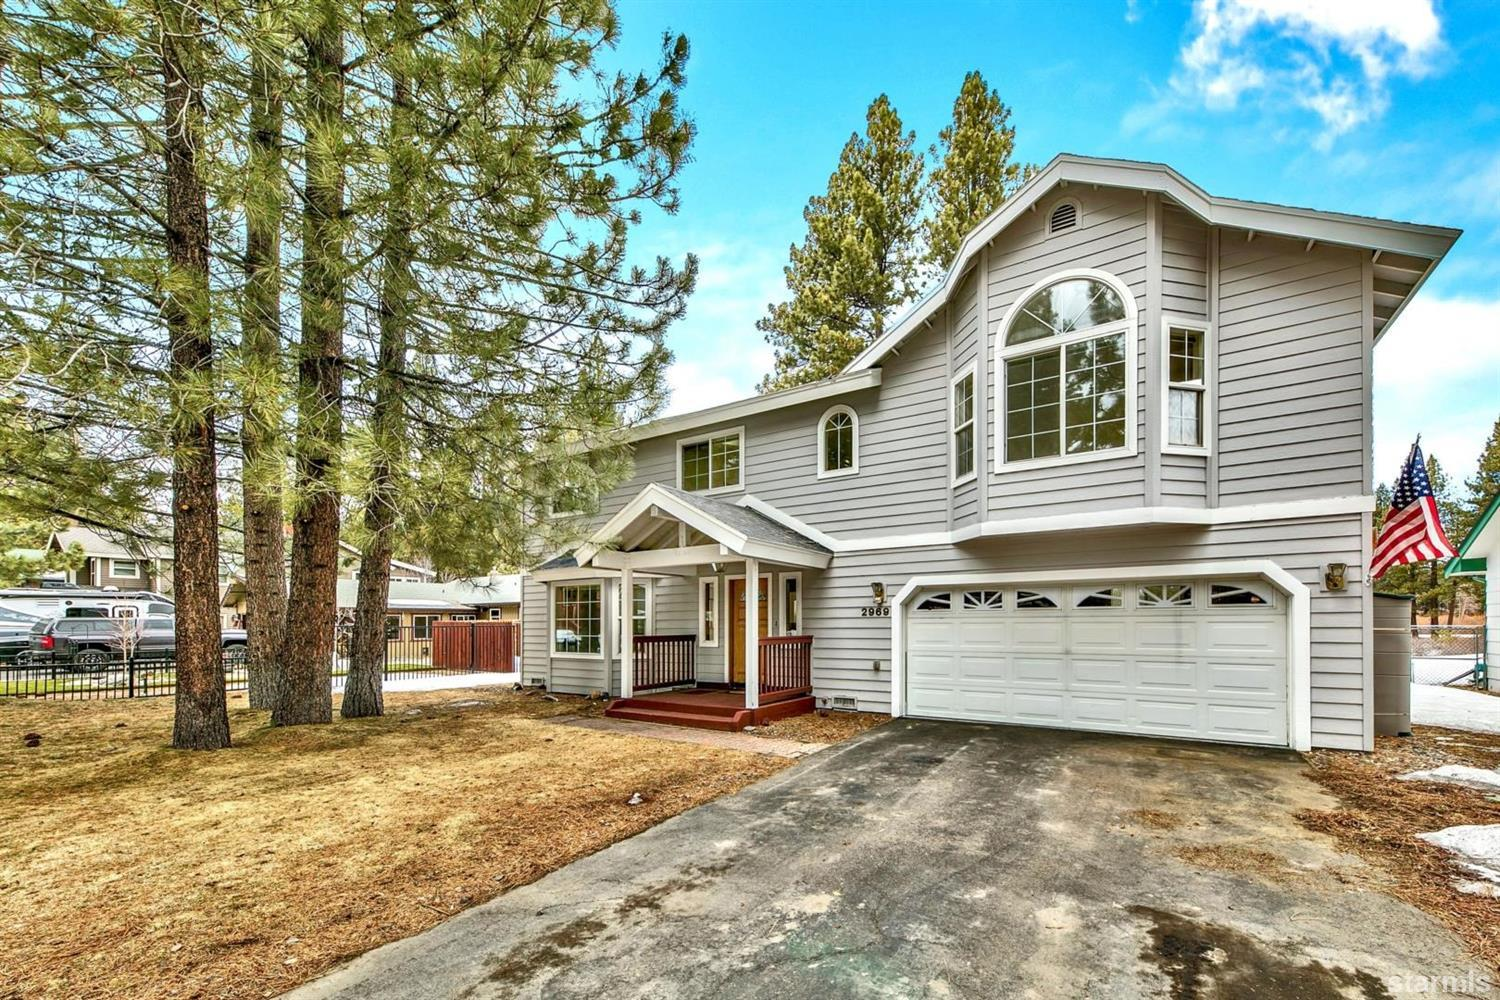 Image for 2969 Springwood Drive, South Lake Tahoe, CA 96150